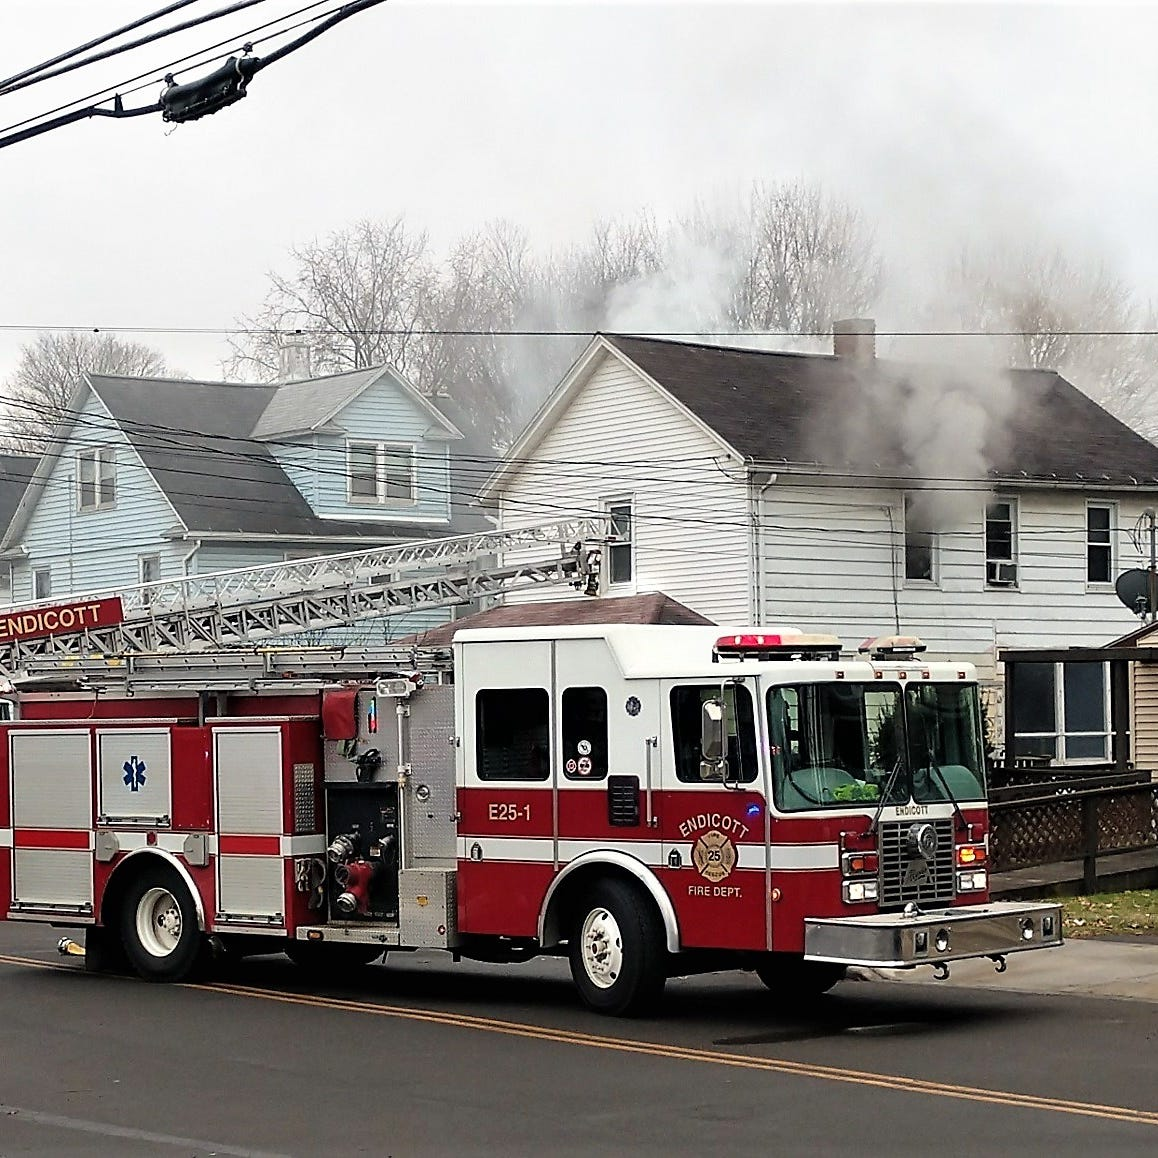 Nobody hurt in Saturday Endicott house fire